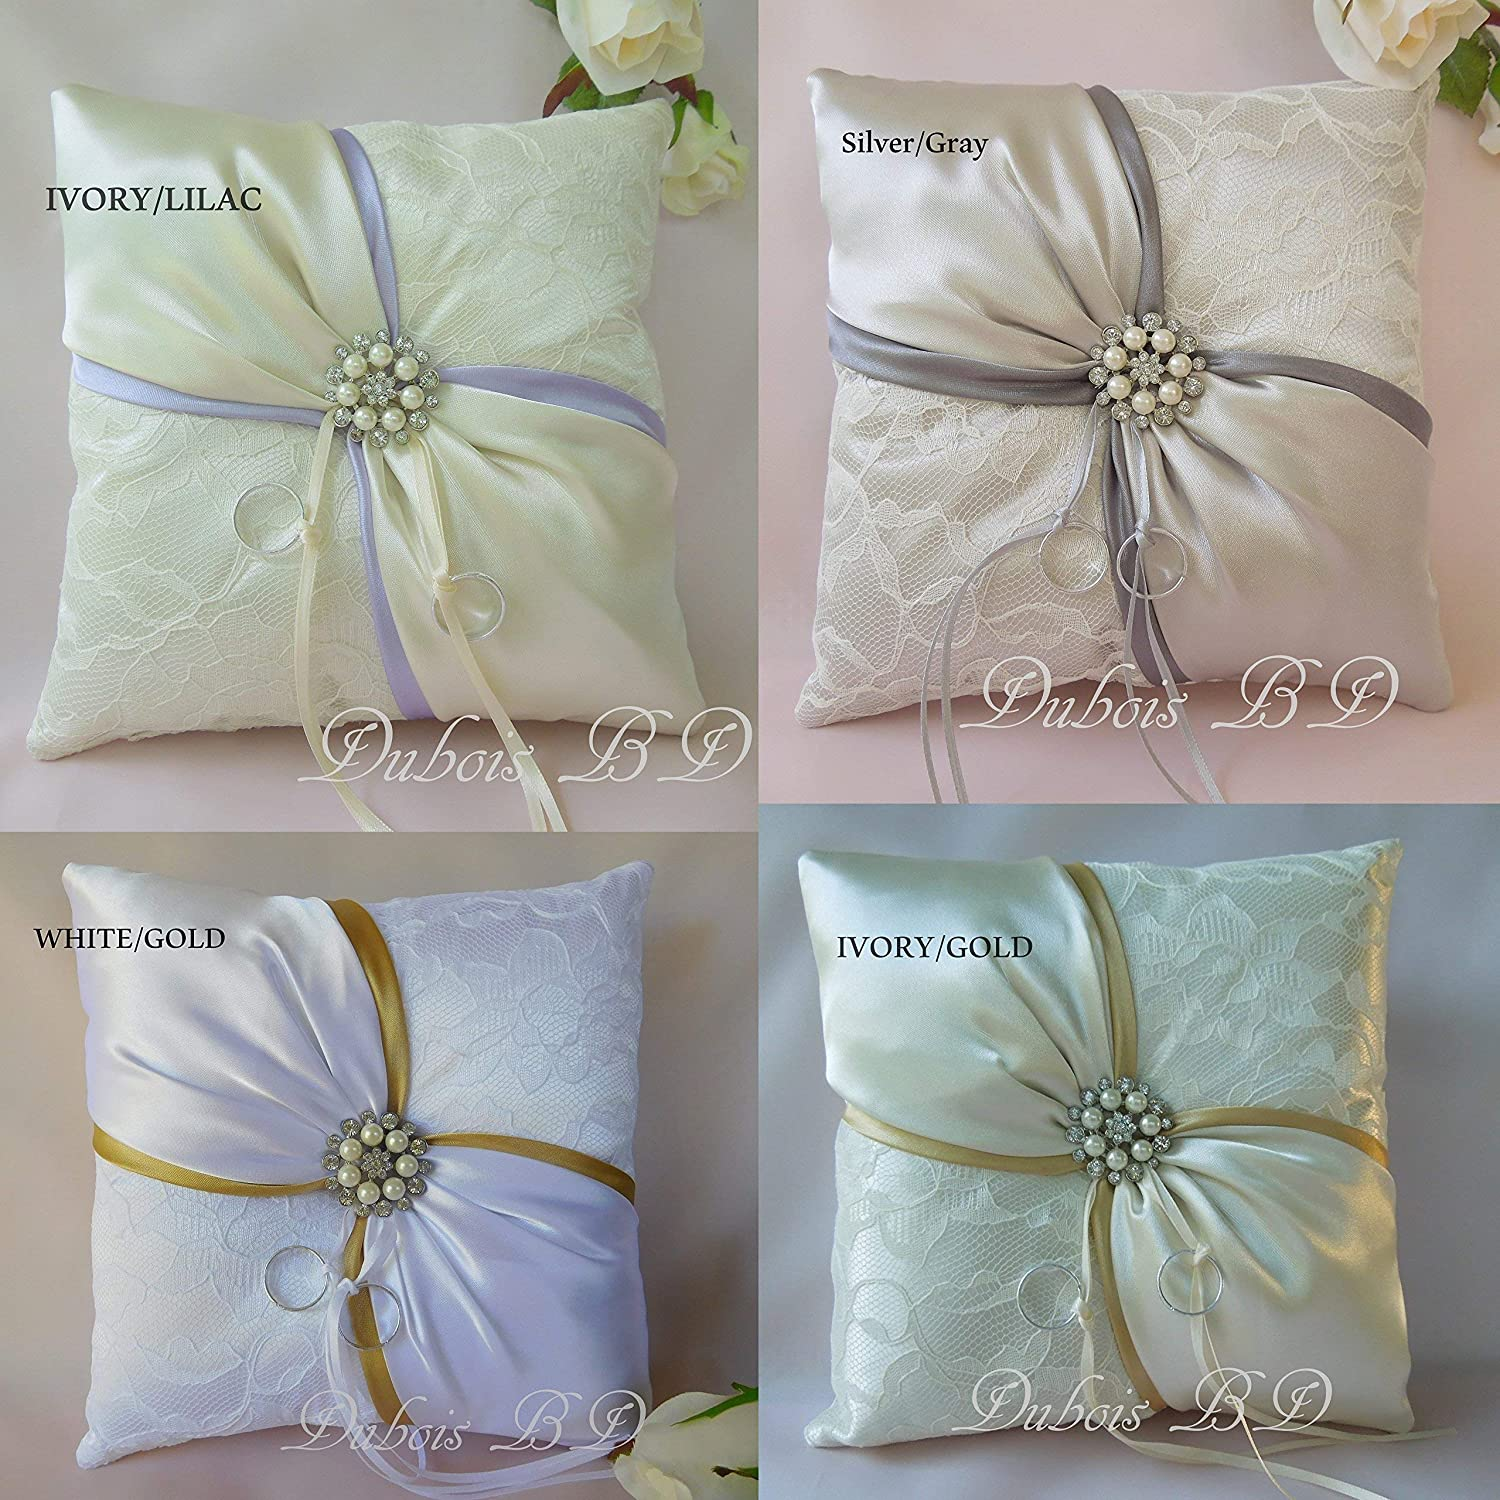 Ivory ring pillow Lilac ring pillow Sash ring pillow White and Gold ring bearer pillow Lace ring pillow Wedding ring pillow